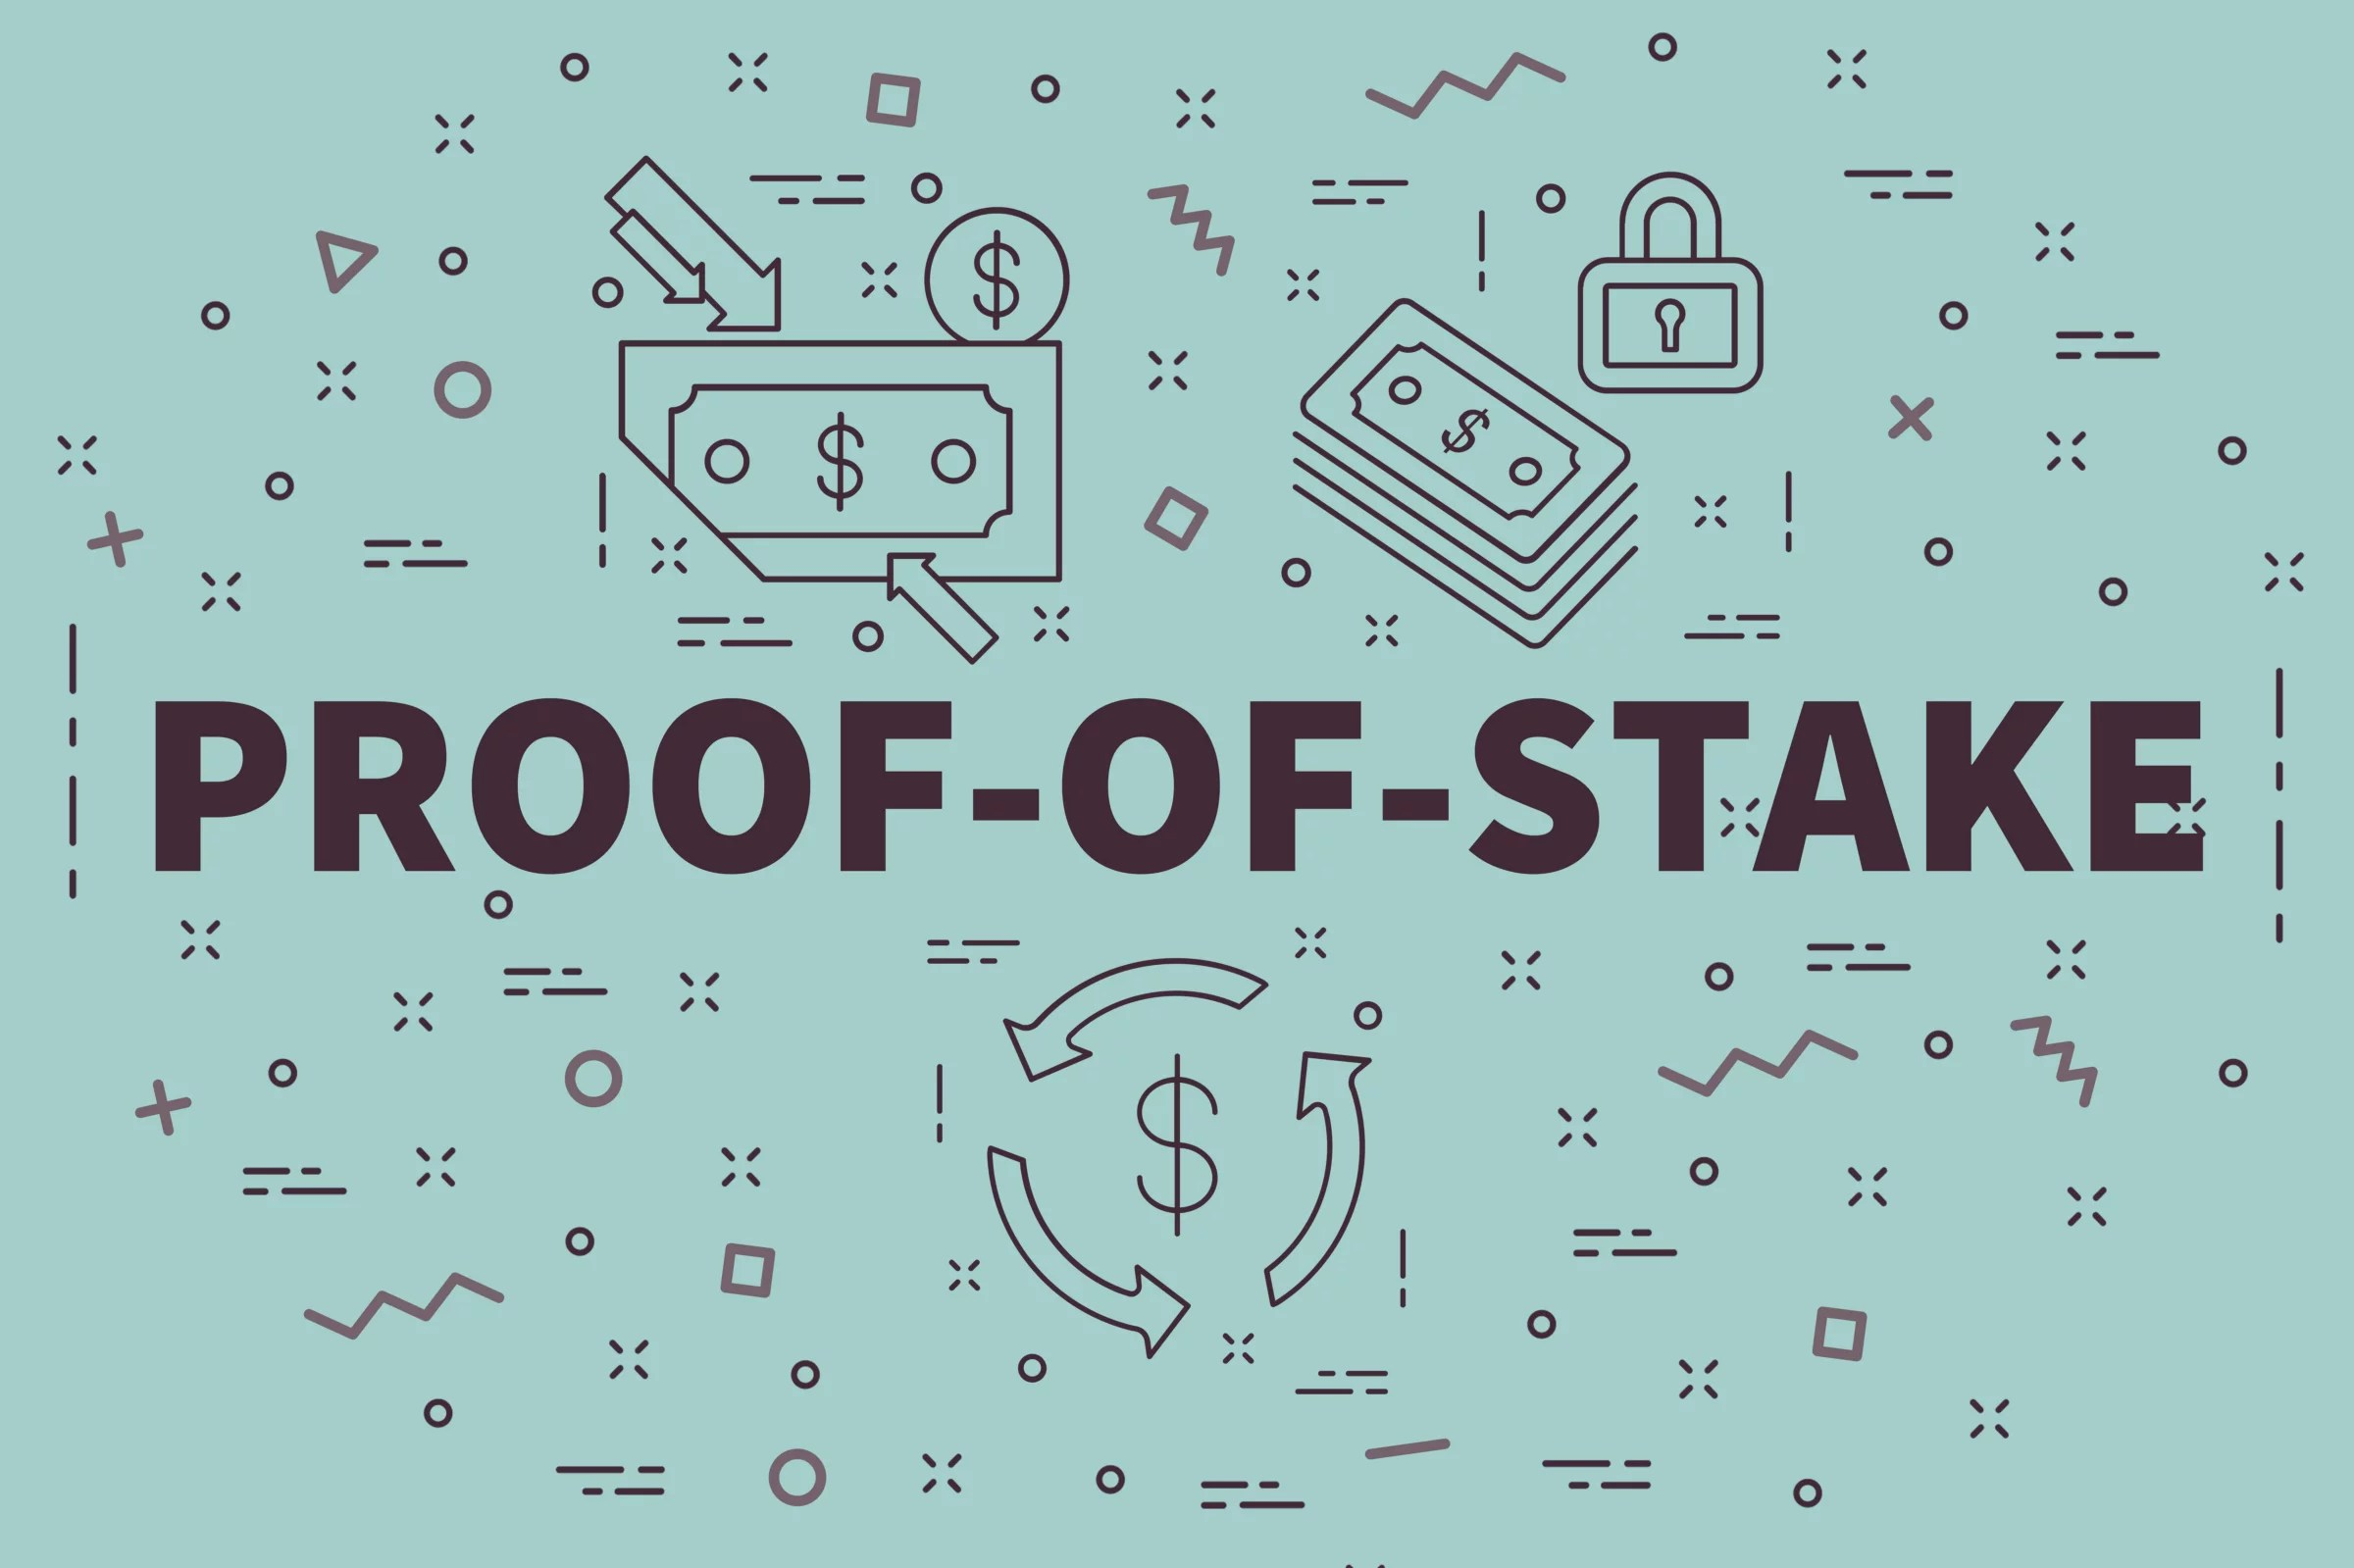 ¿Qué es Proof-of-Stake?